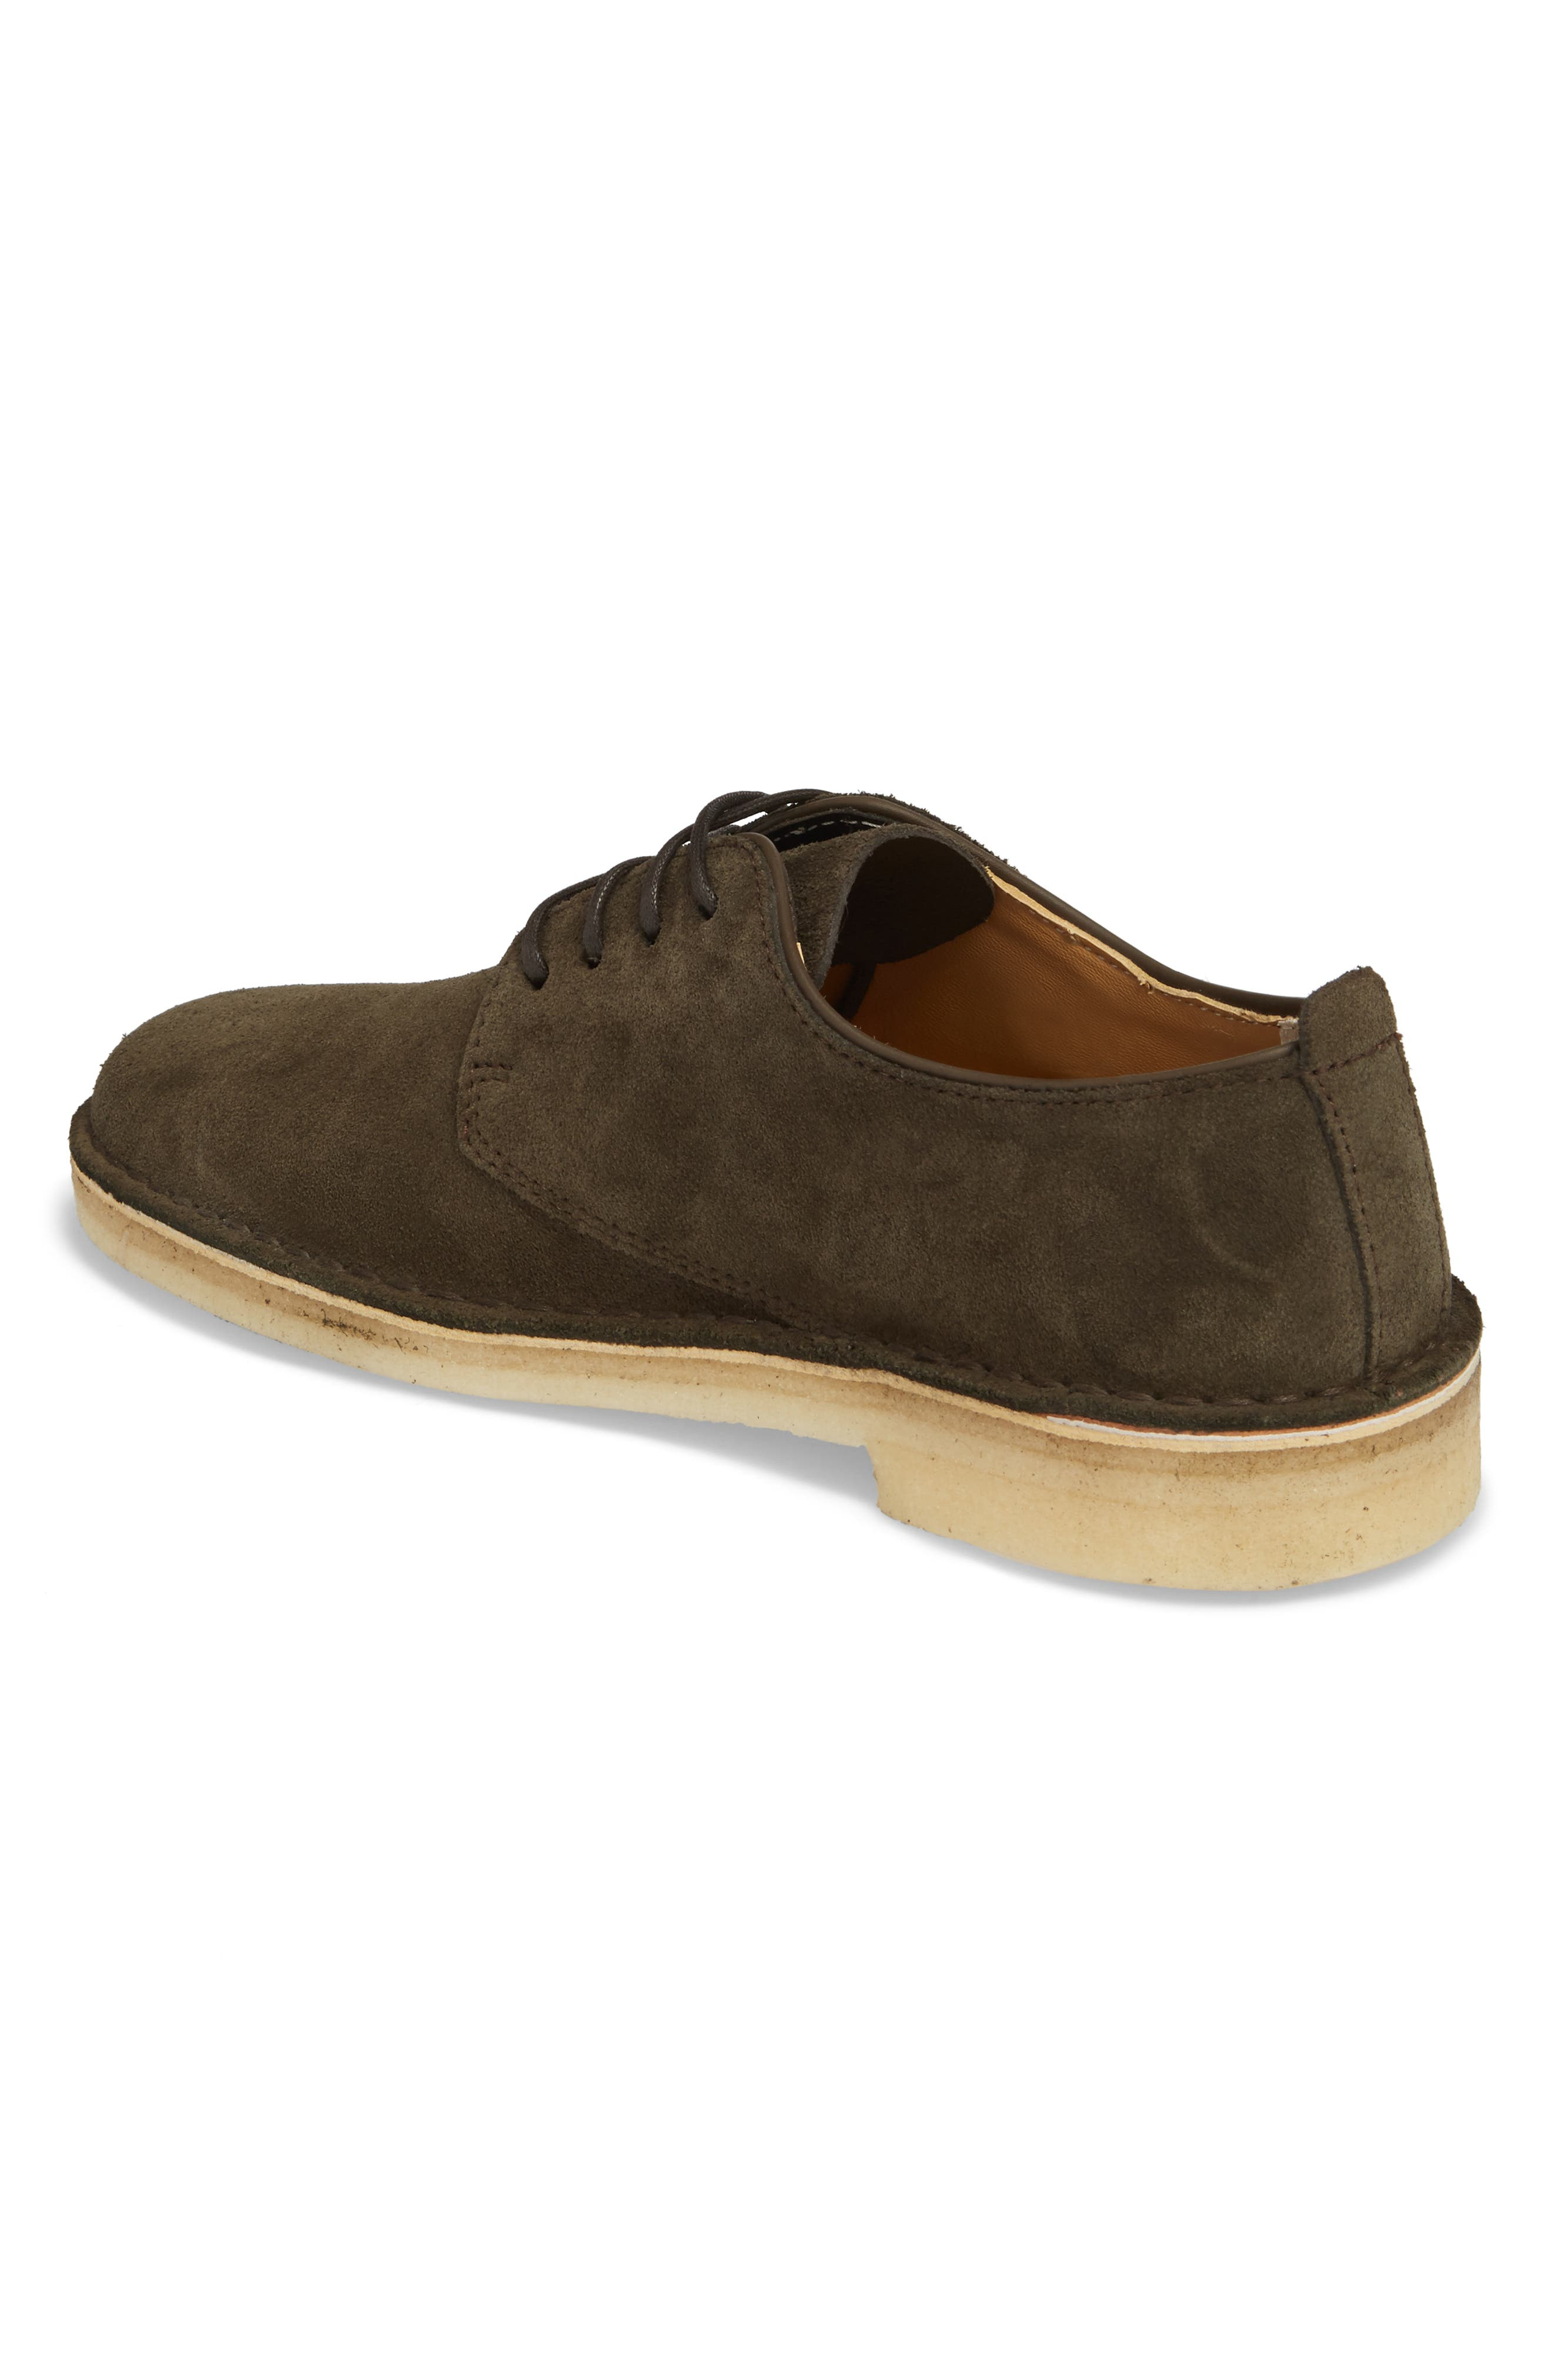 Desert London Suede Plain Toe Derby,                             Alternate thumbnail 2, color,                             Peat Suede